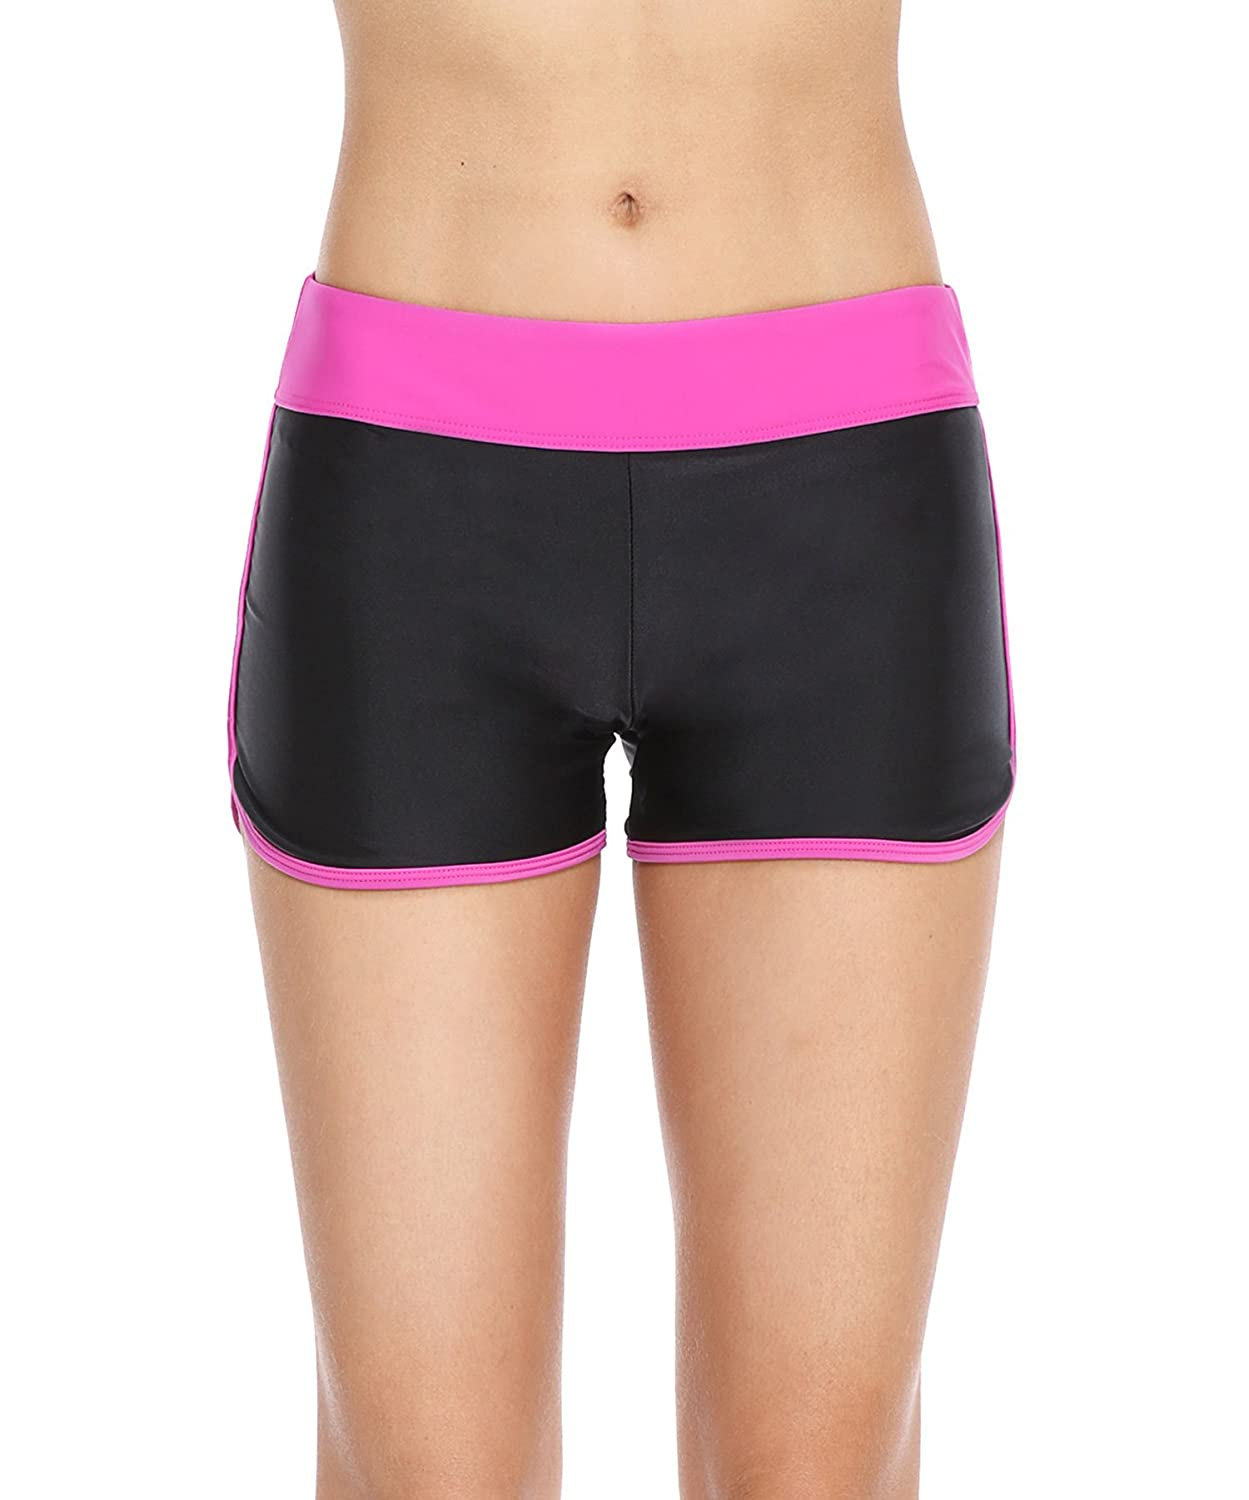 Eono Essentials Women's Colour Block Swim Shorts/Boy Shorts/Beach Bottoms